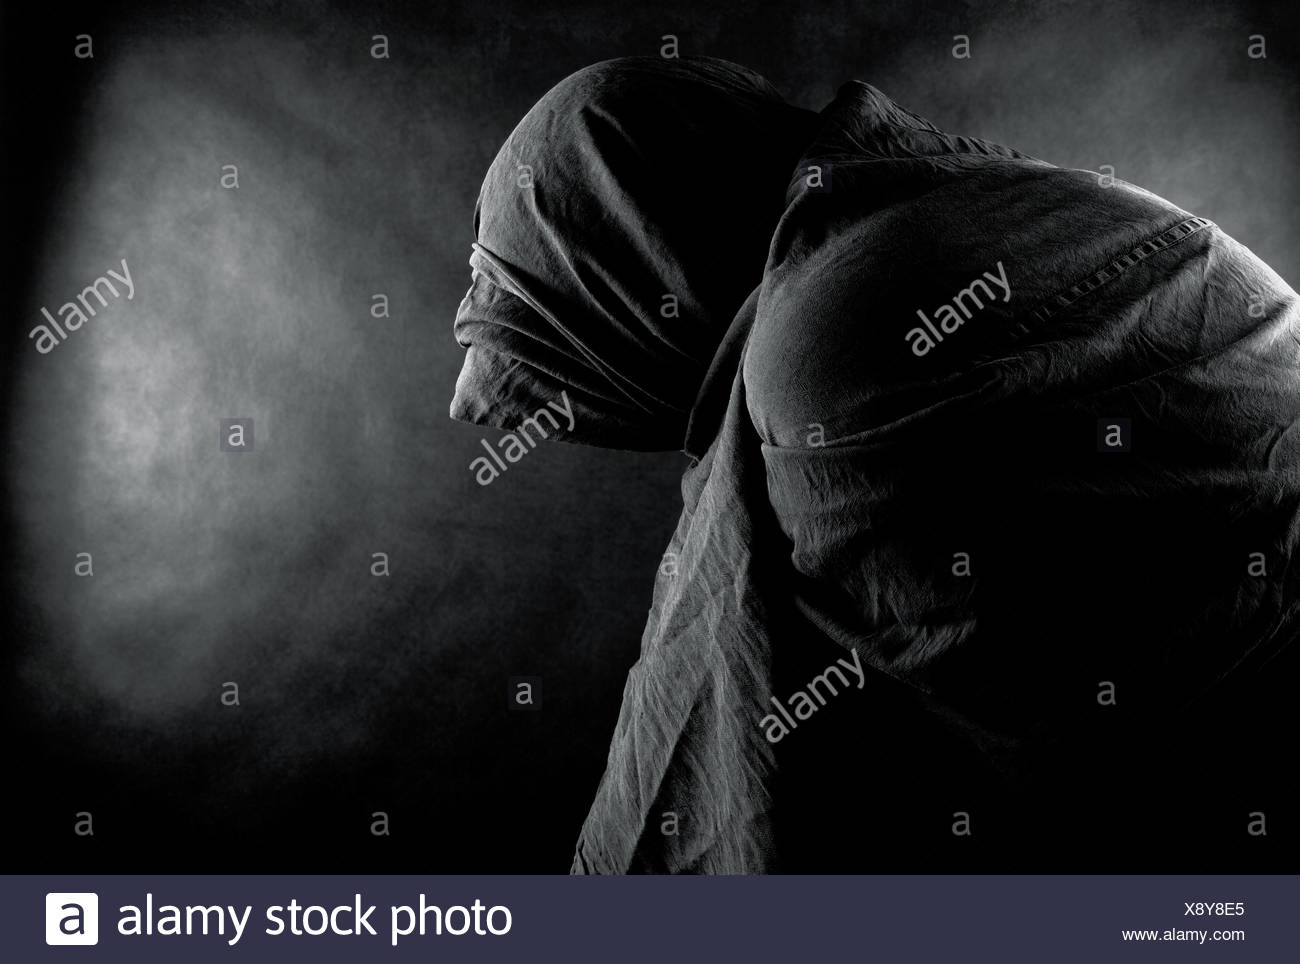 danger death darkness - Stock Image